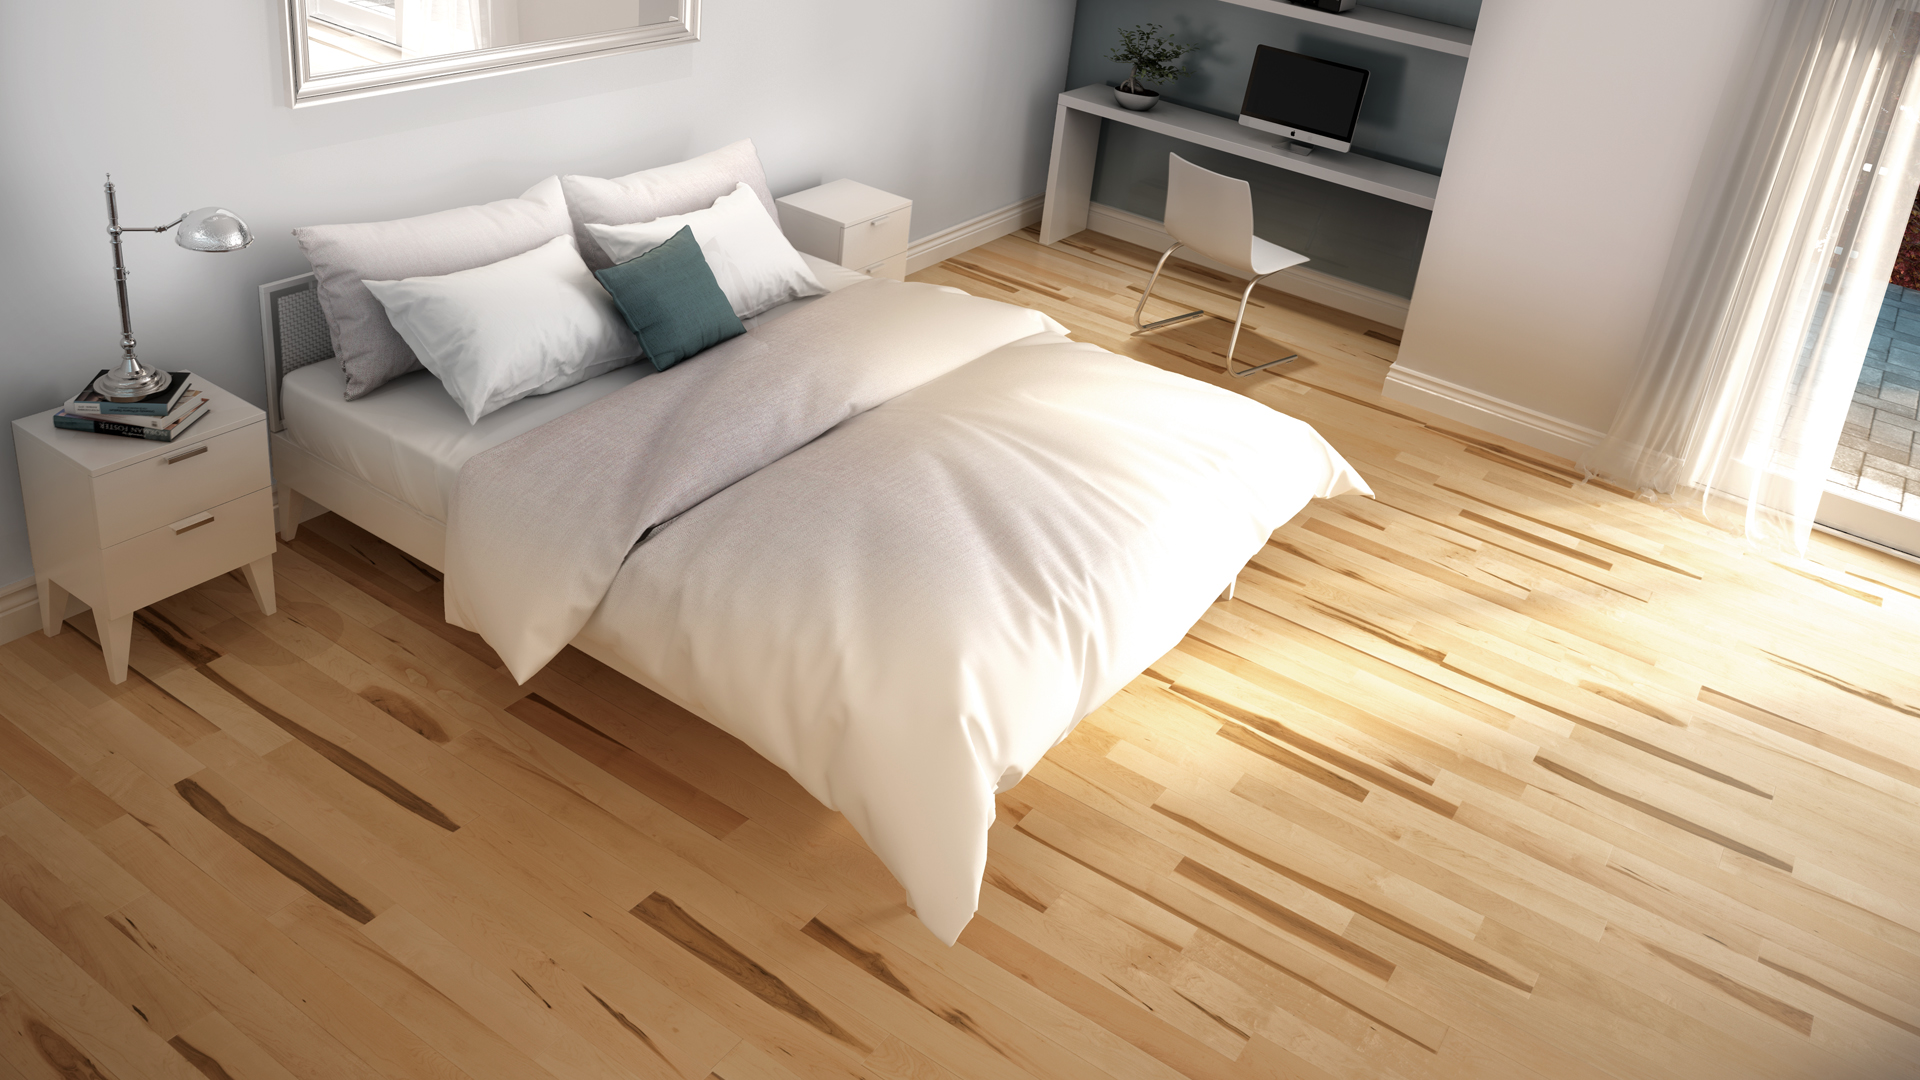 Hard maple natural | Dubeau hardwood floors | Bedroom decor